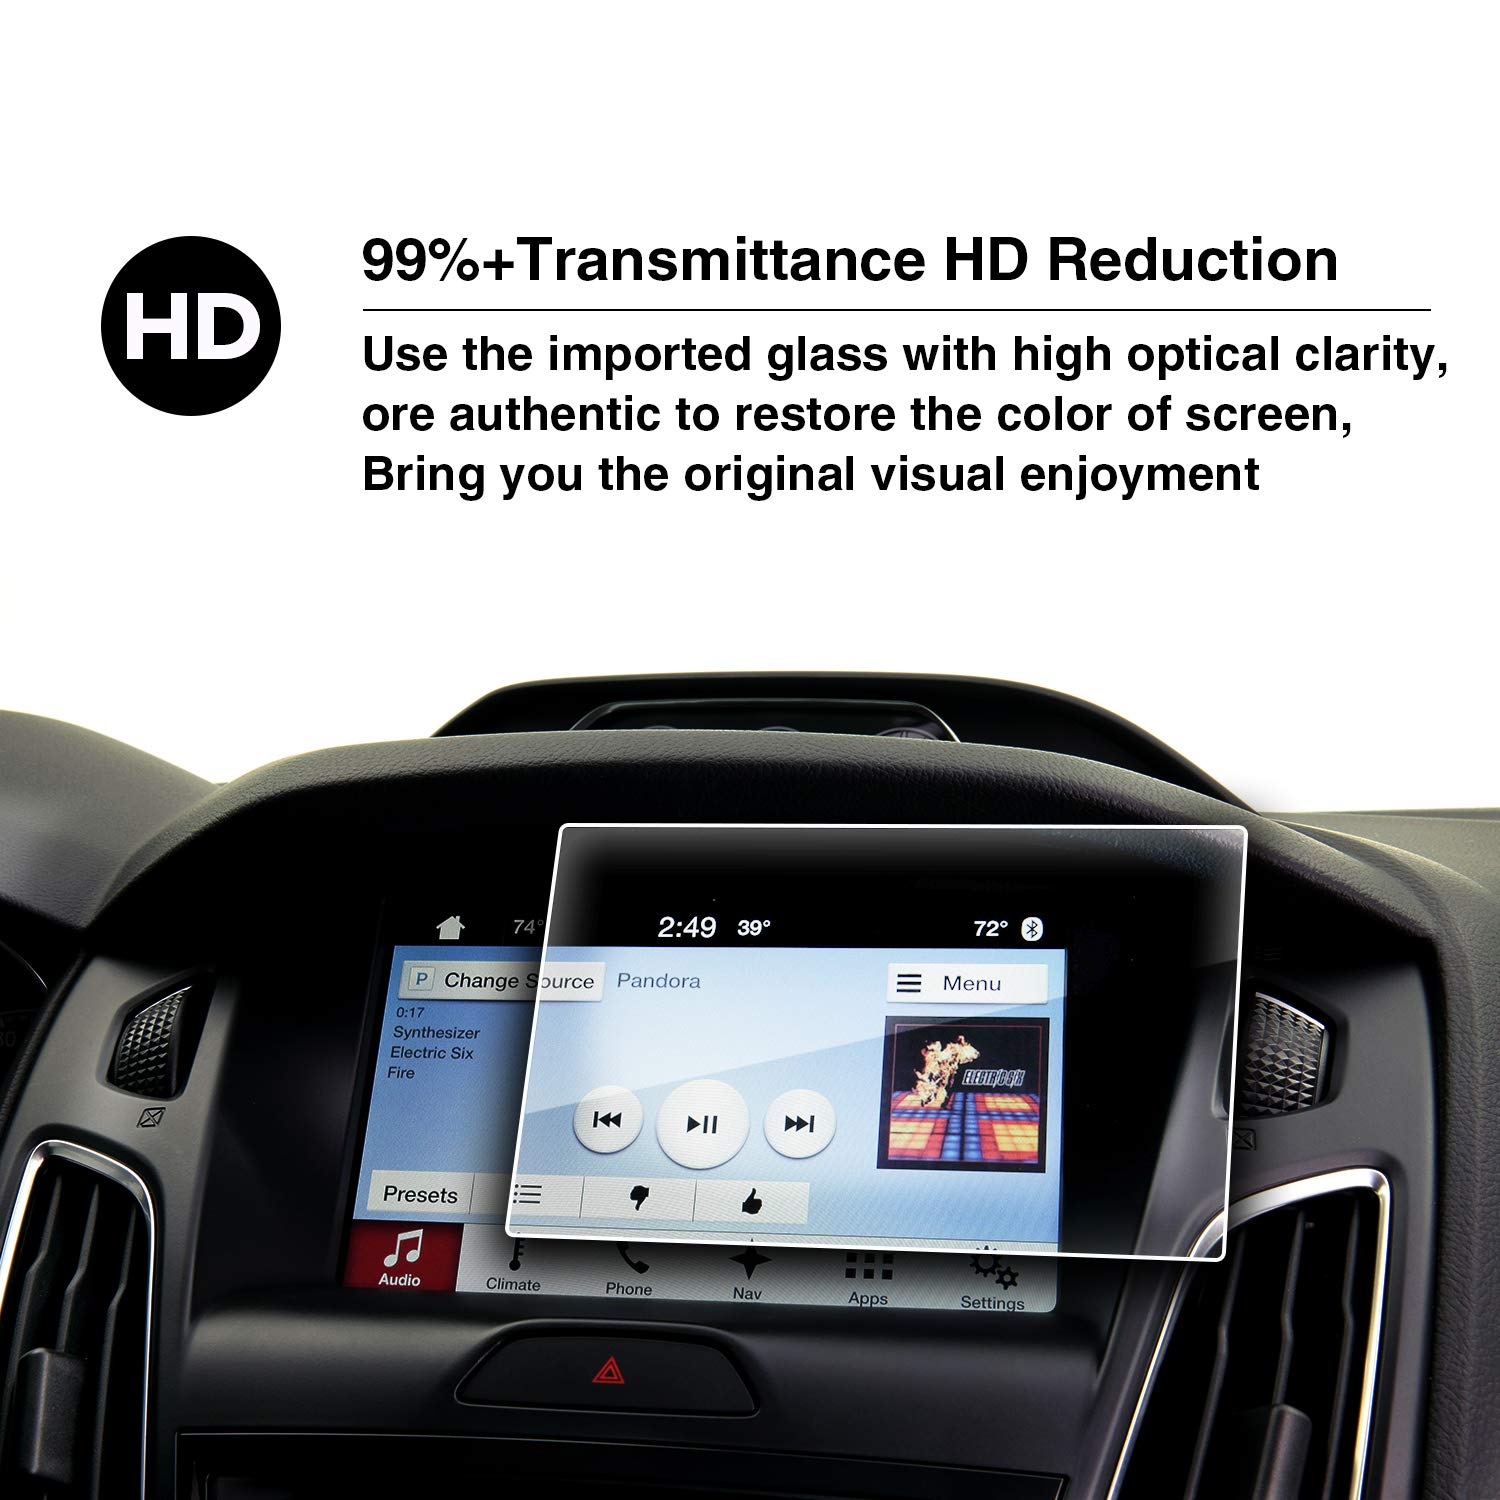 YEE PIN 2015 2016 2017 2018 Ford Focus Sync 2 Sync 3 App Link My Ford 8 Inch Car Display Fully Protects Tempered Glass HXY